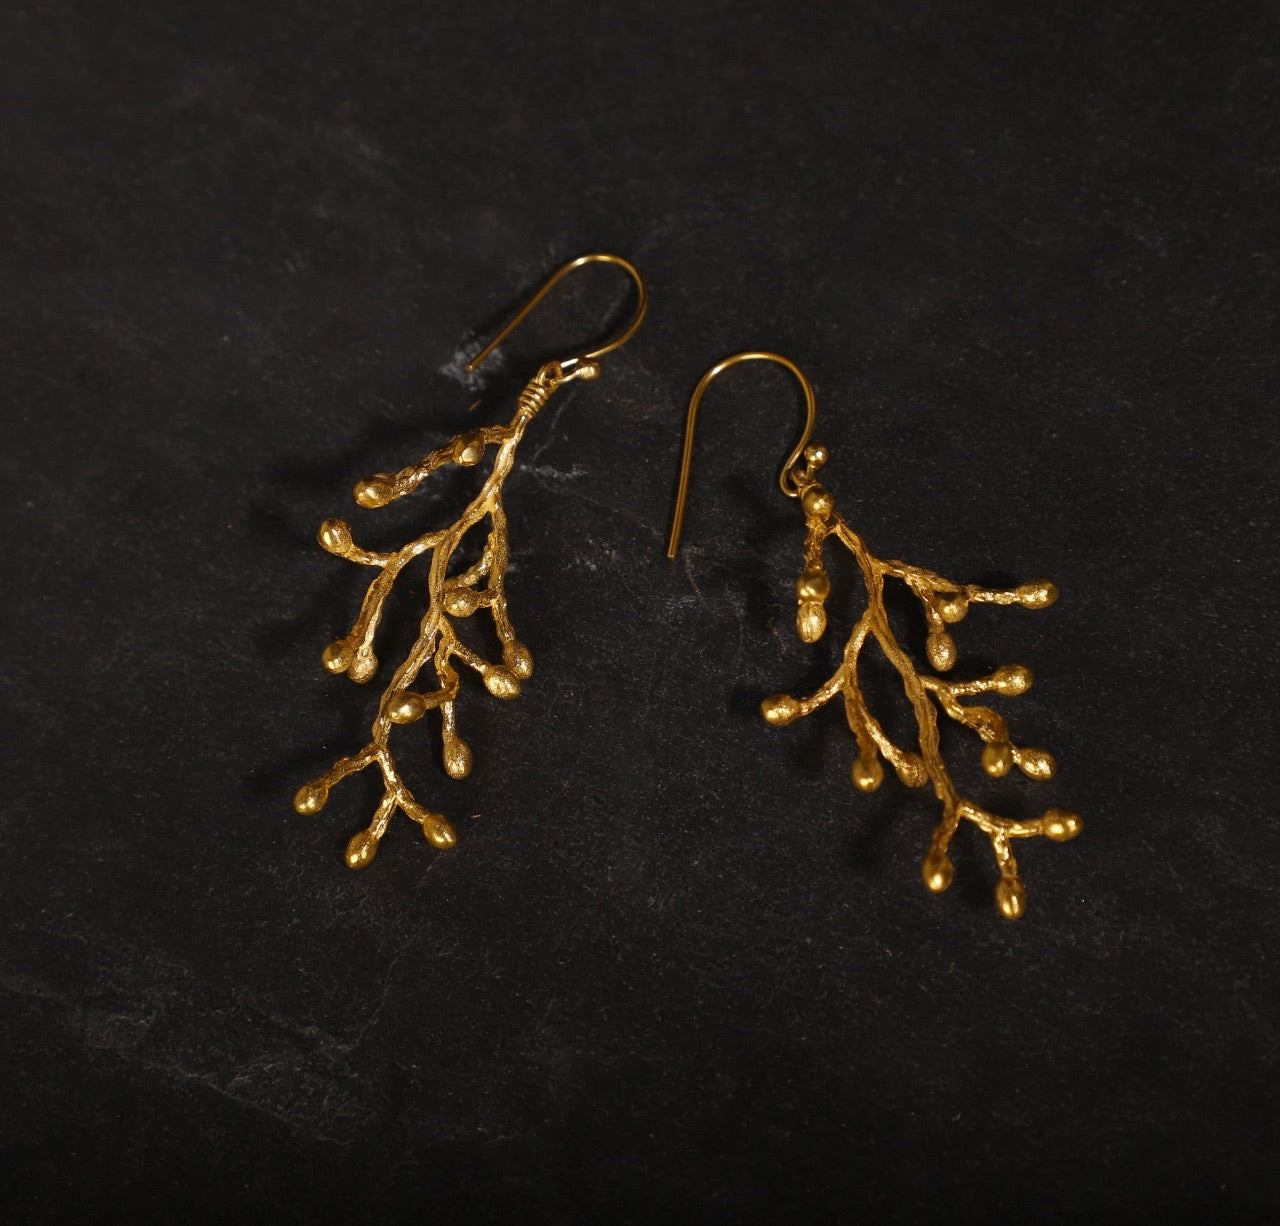 jewelry - berserk - gold plated vine cluster loops